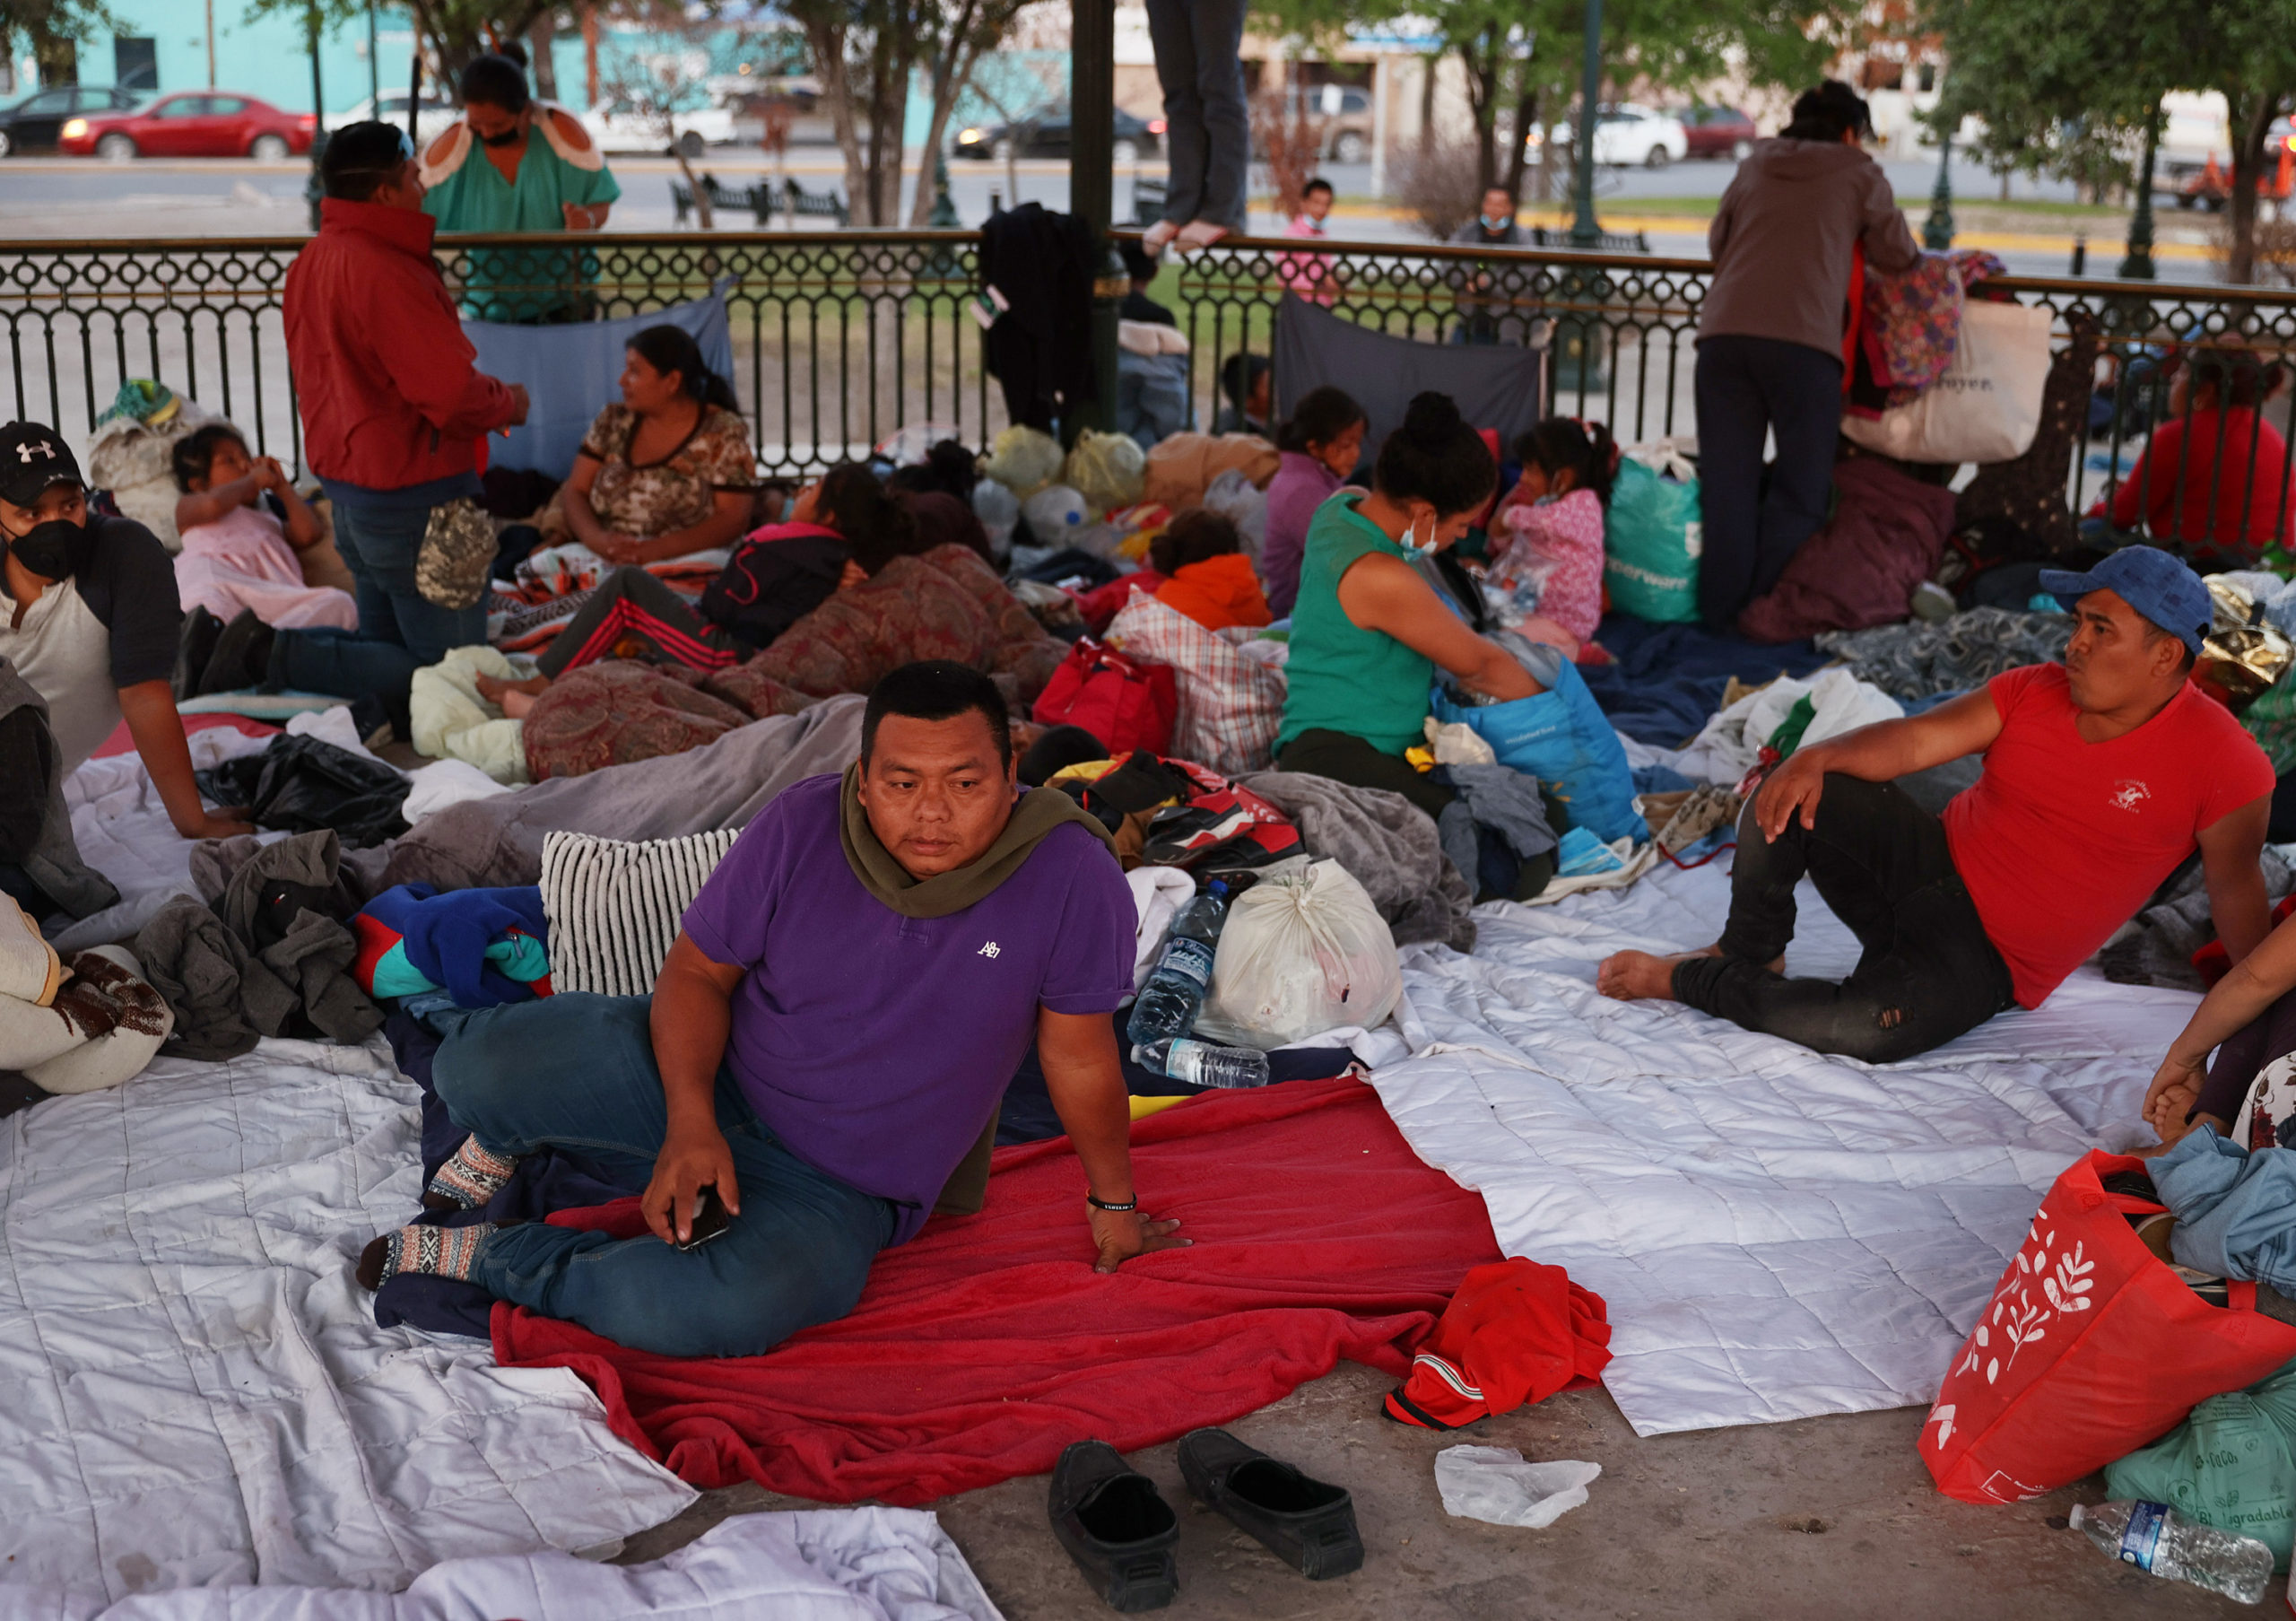 REYNOSA, MEXICO - MARCH 25: Emner, originally from Guatemala, sits with other migrants camping in the Plaza las Americas after being deported when they were caught crossing illegally into the United States on March 25, 2021 in Reynosa, Mexico. Emner says he had been waiting in the park for eight days hoping for a chance to seek asylum in the United States. (Photo by Joe Raedle/Getty Images)